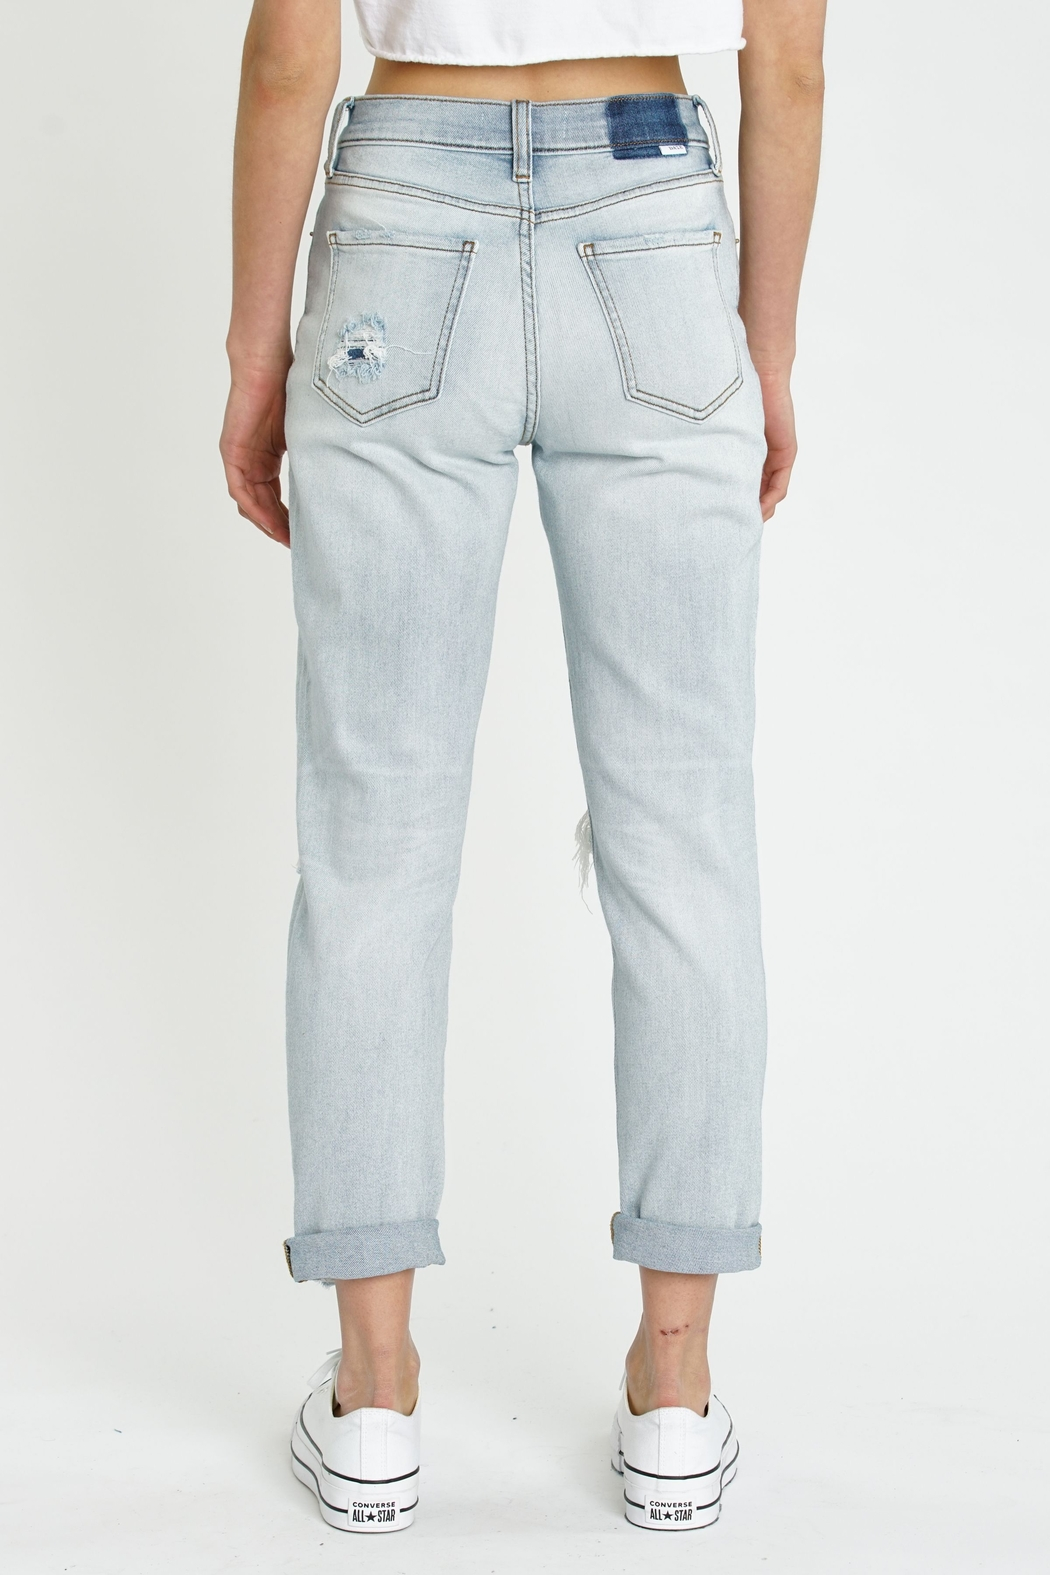 Daze Loverboy High Rise Jeans - FAR OUT - Side Cropped Image